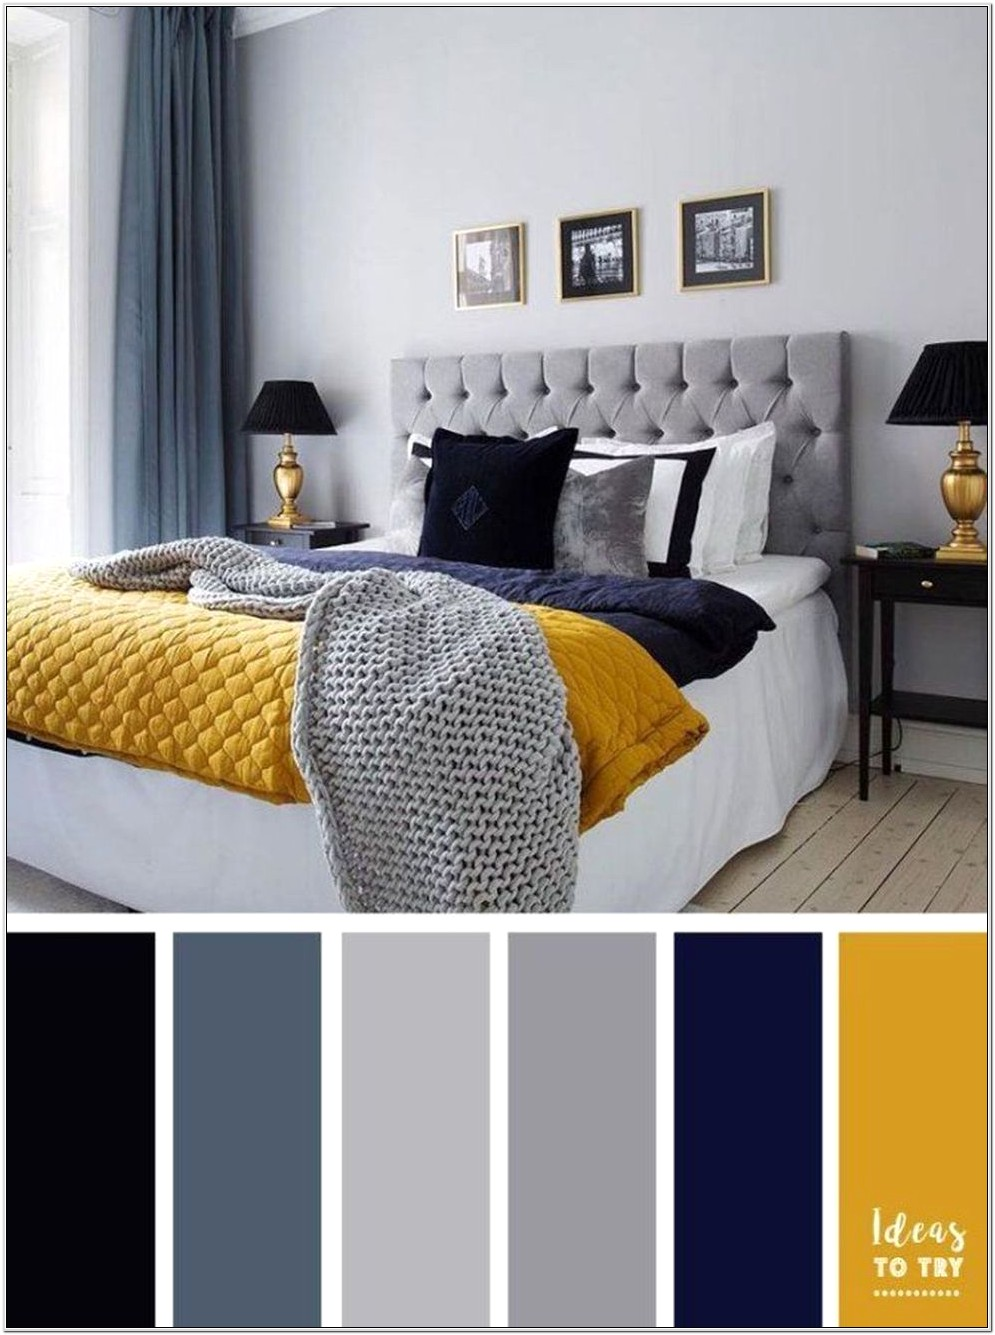 Bedroom Mixing Blue And Gray Decor